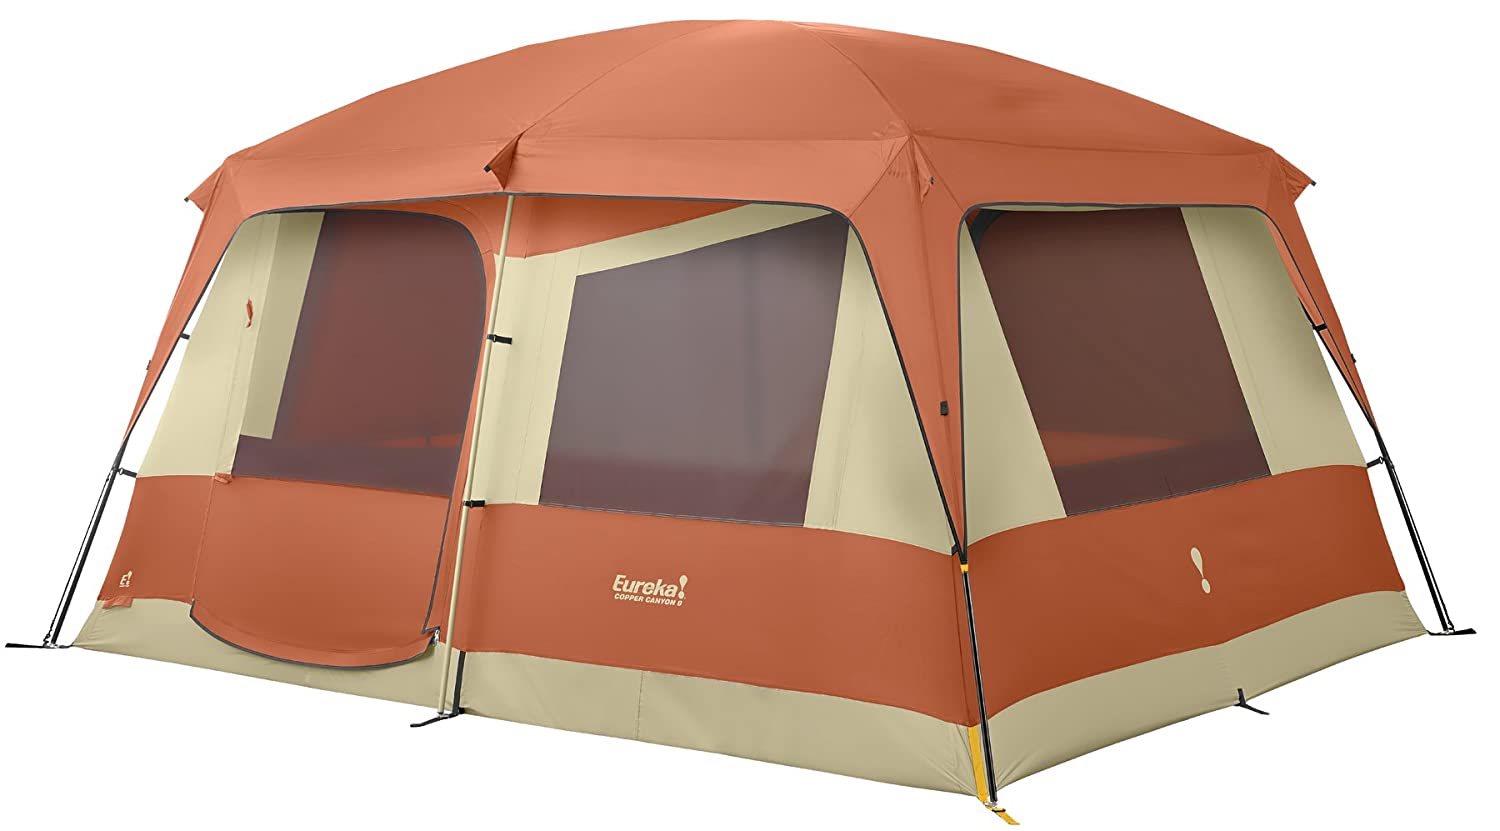 Amazon.com  Eureka Copper Canyon 8 -Person Tent  Family Tents  Sports u0026 Outdoors  sc 1 st  Amazon.com : timberline tents - memphite.com